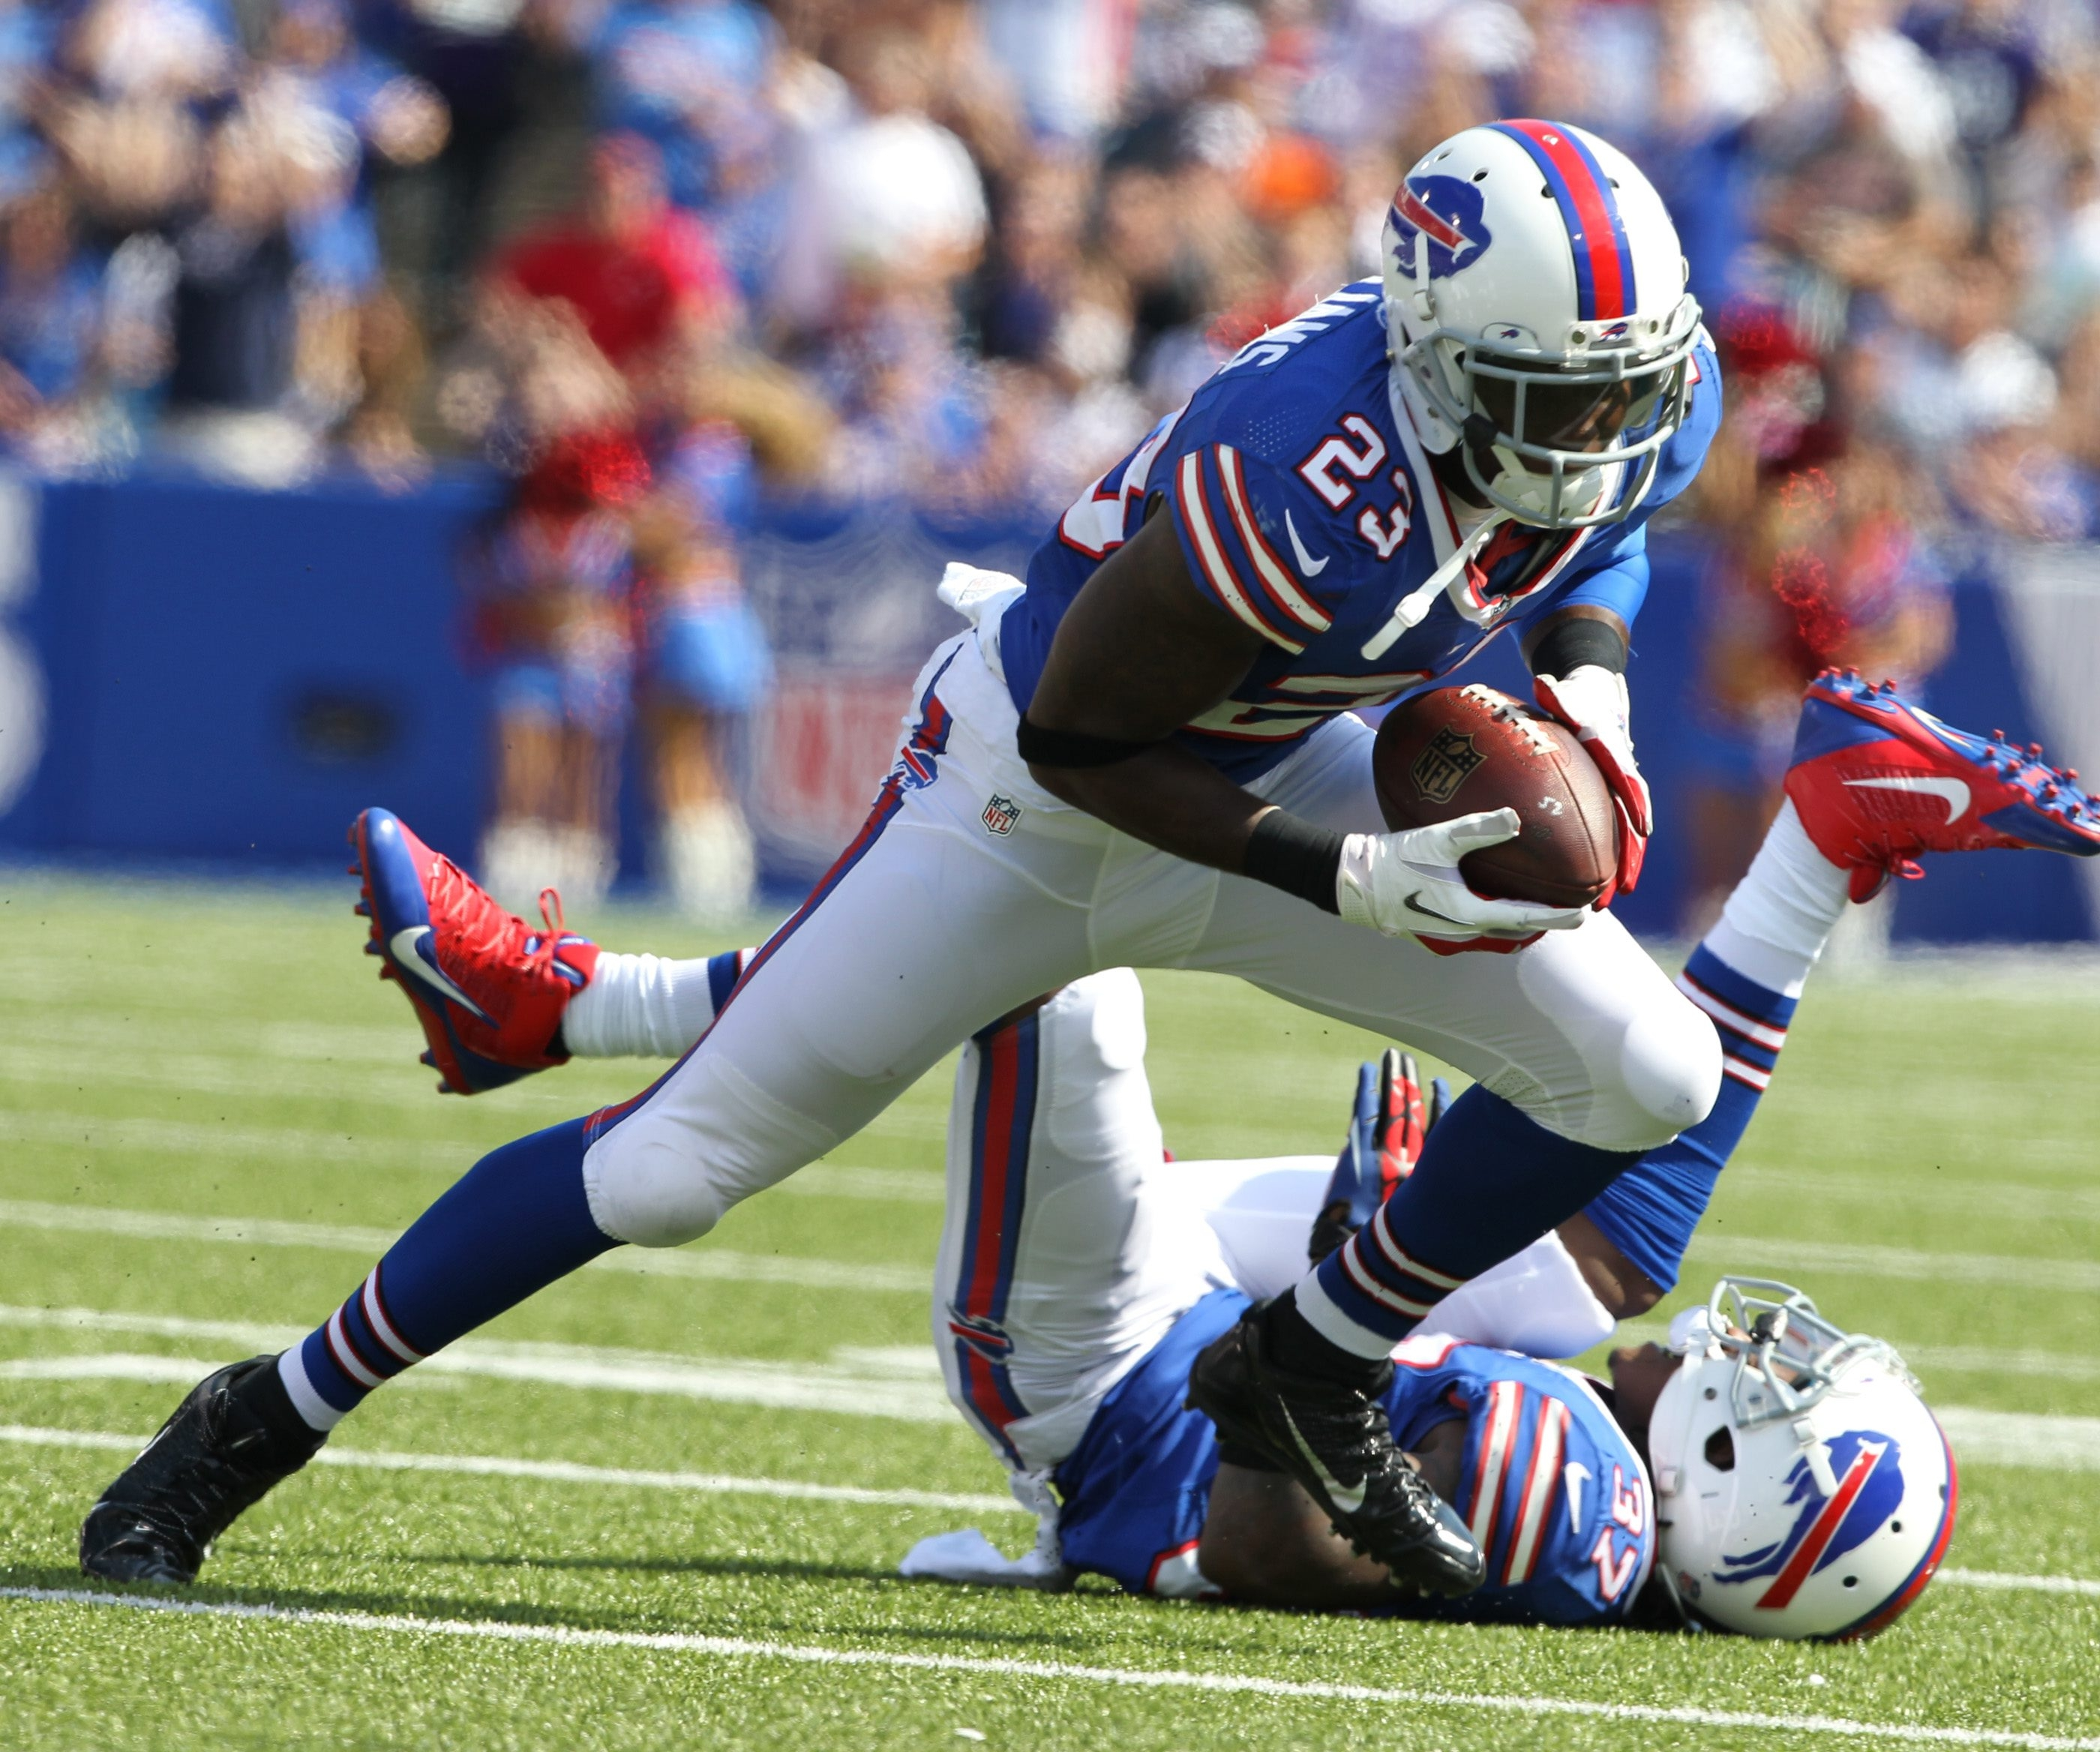 Bills cornerback Aaron Williams records one of his two interceptions Sunday. He also got banged up, leaving the game twice in the win.